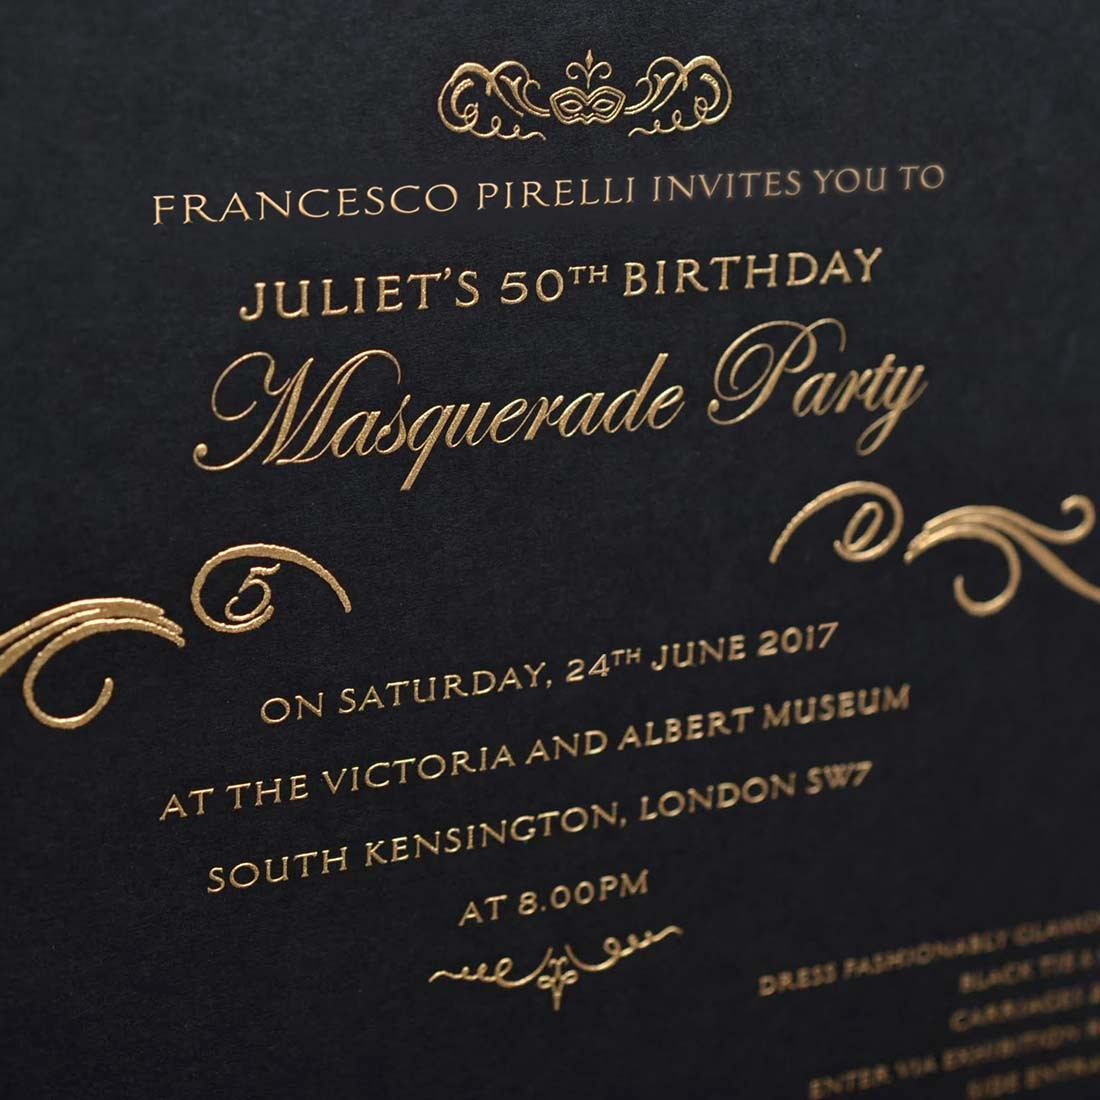 Masquerade Ball Invitation Wording Fresh Masquerade Ball Invitation